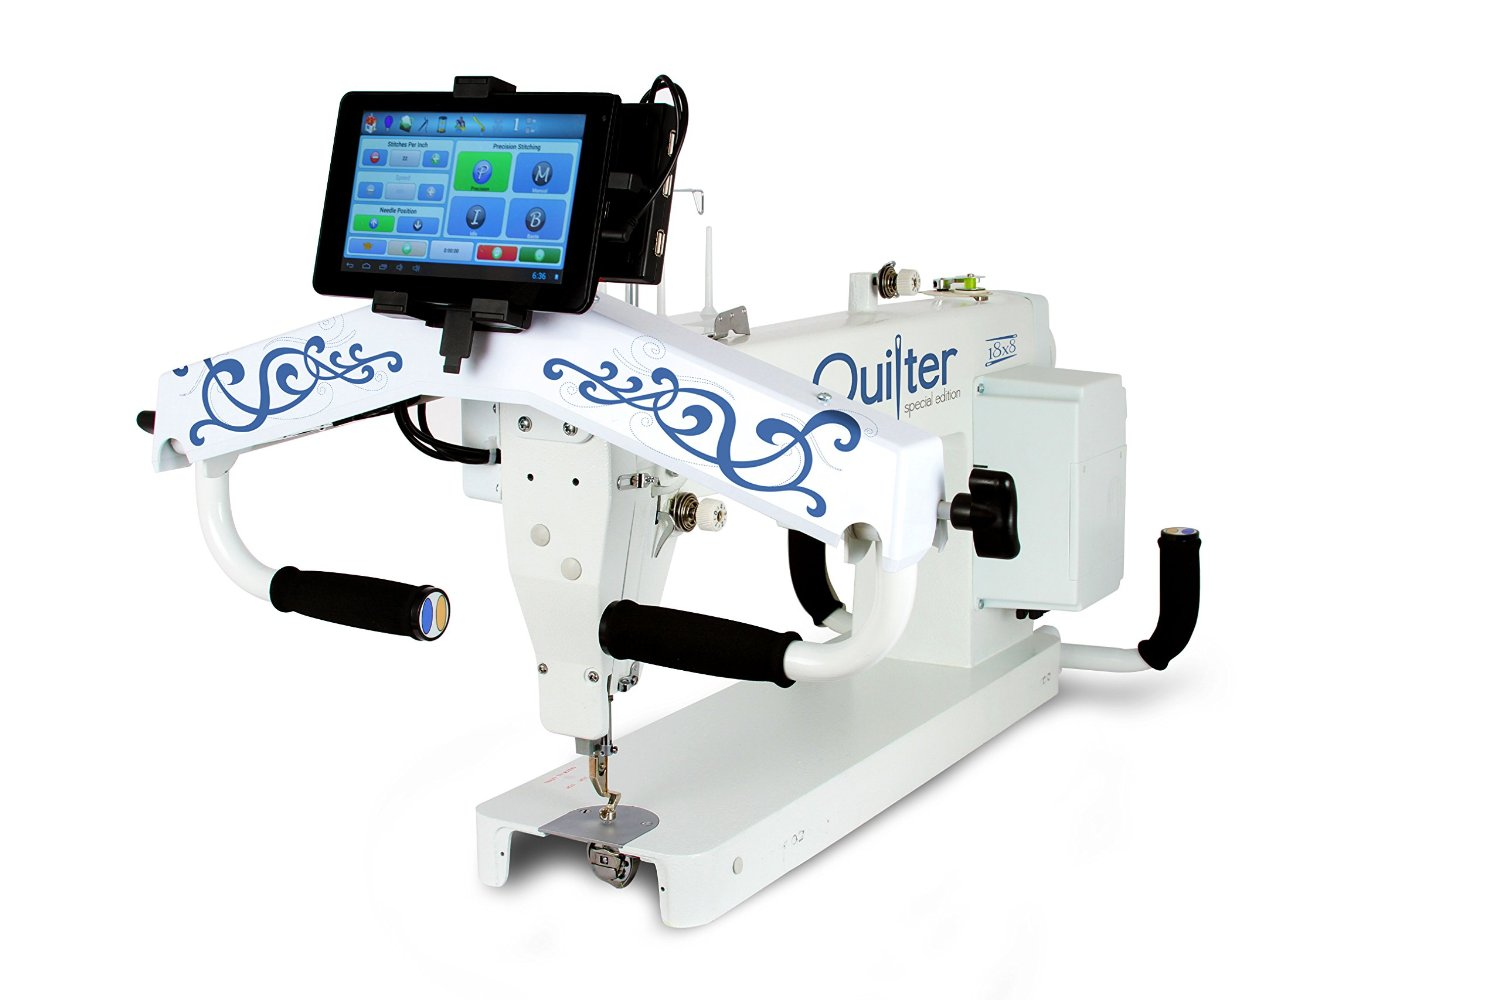 King Quilter Quilting Machine Tools For Quilting